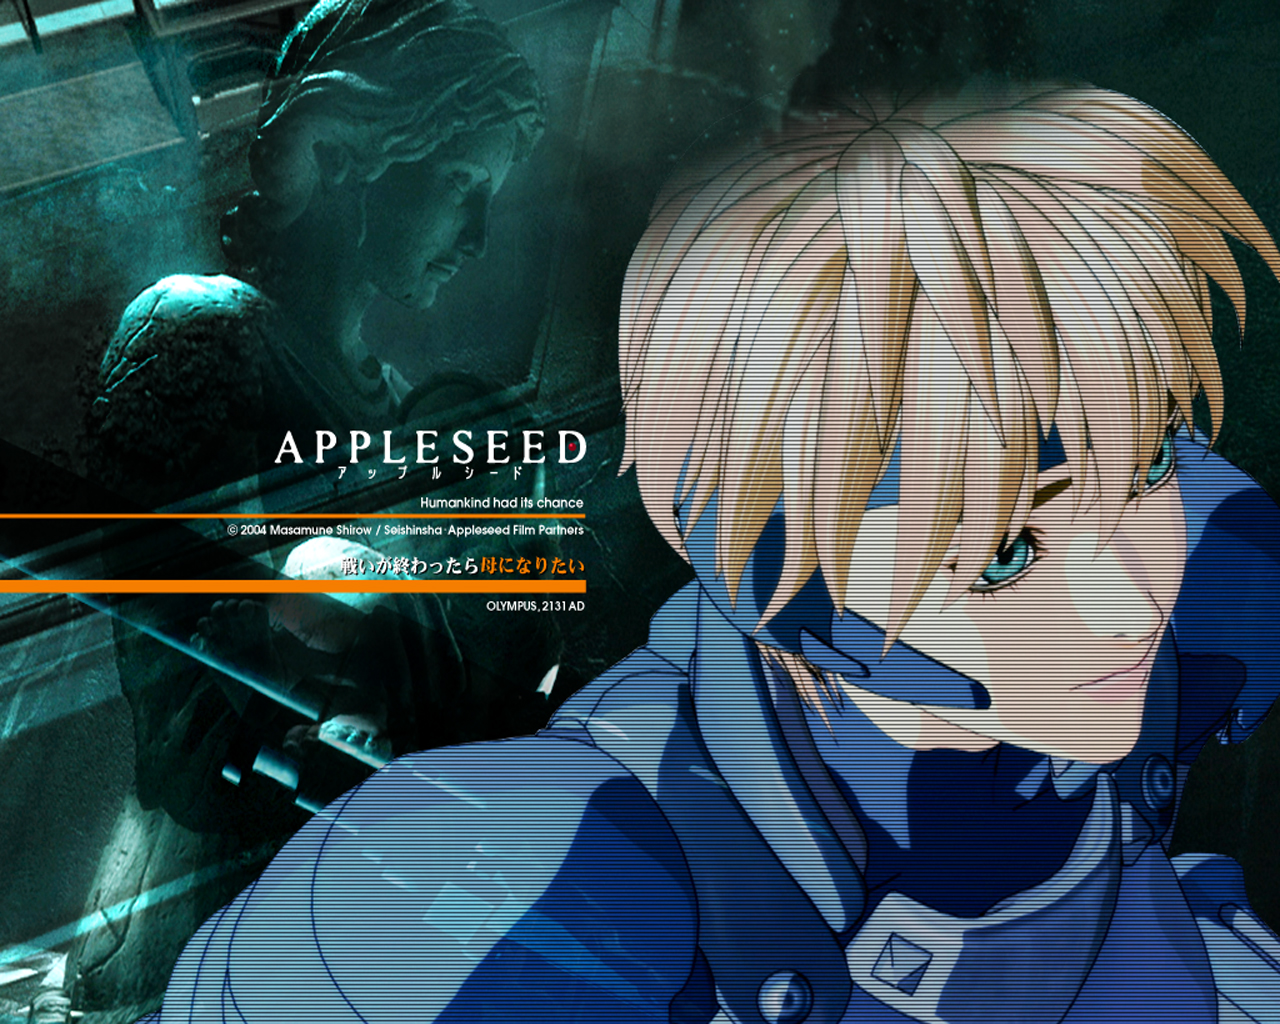 appleseed_movie_03wp01.jpg